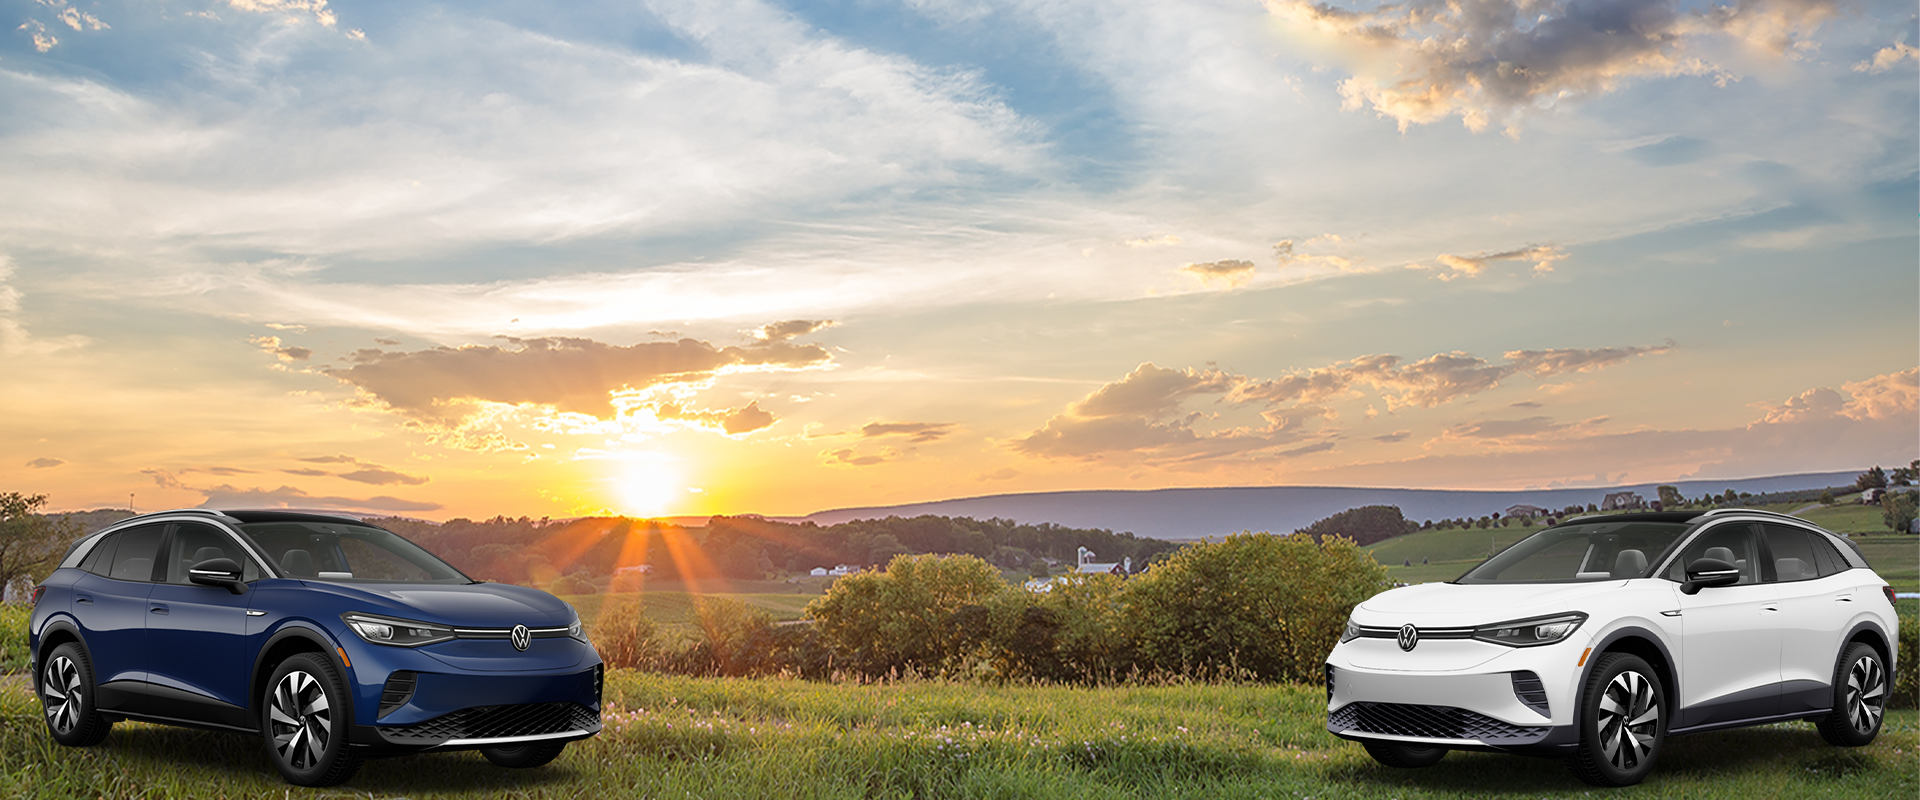 2 Cars in a field during a sunset